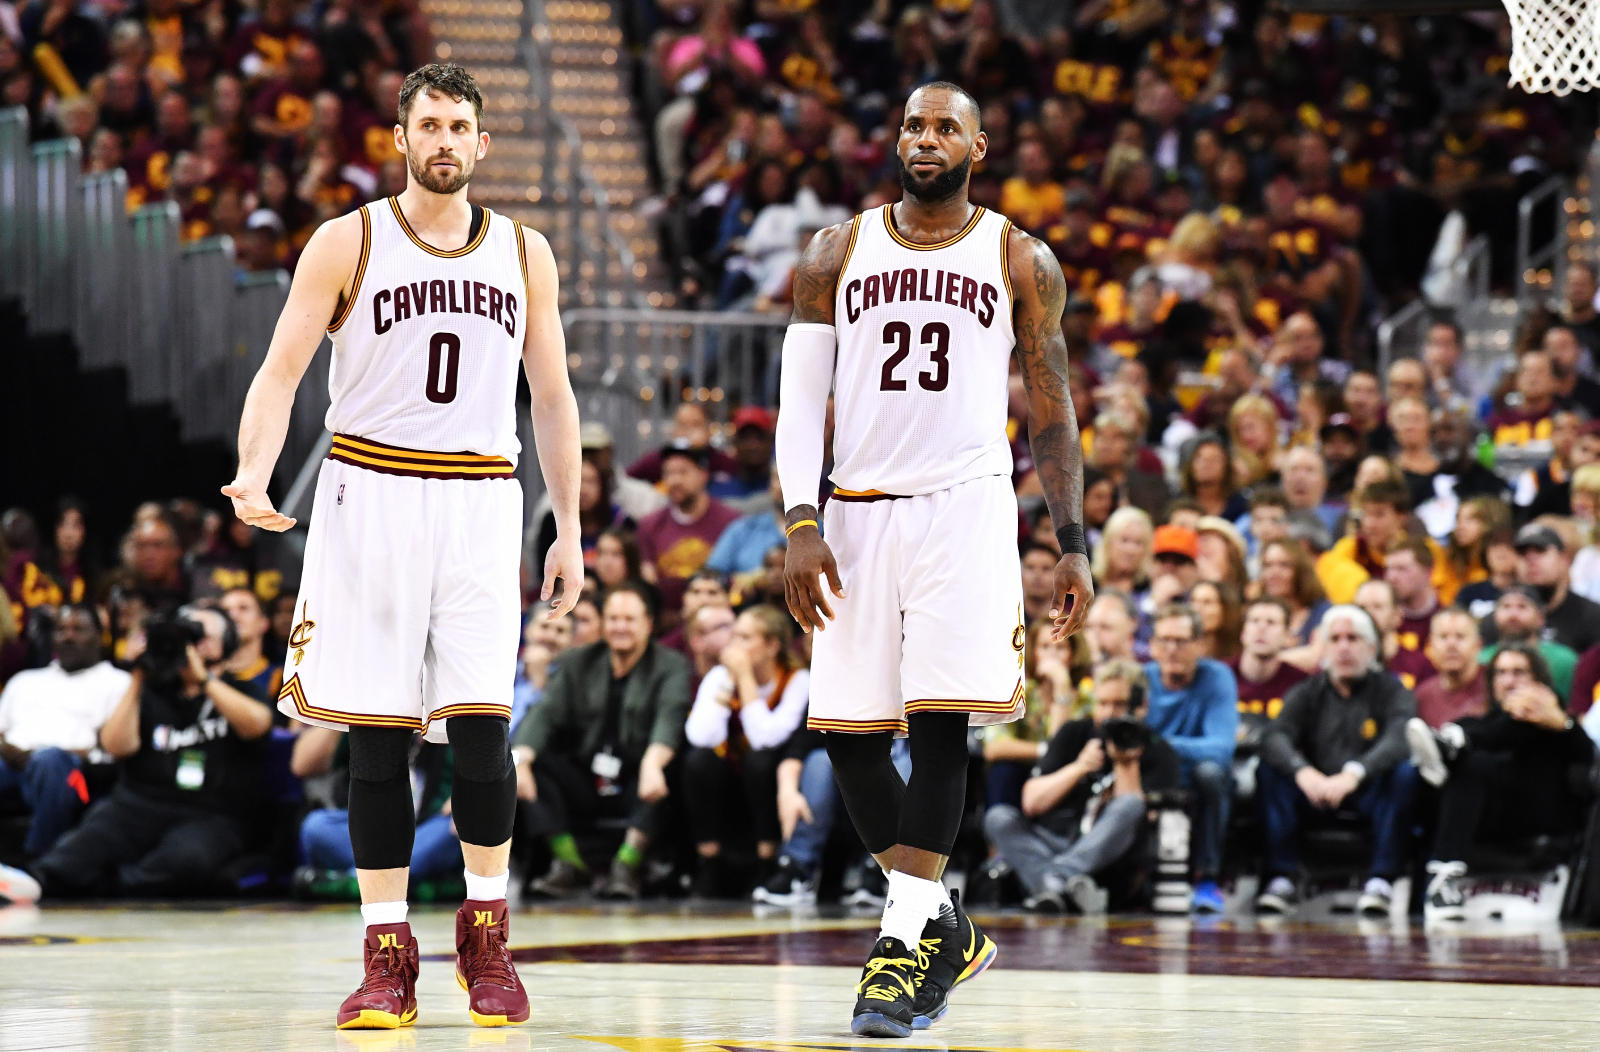 Kevin Love was absolutely dominant on the Timberwolves. However, he had to change everything to play with LeBron James on the Cavaliers.